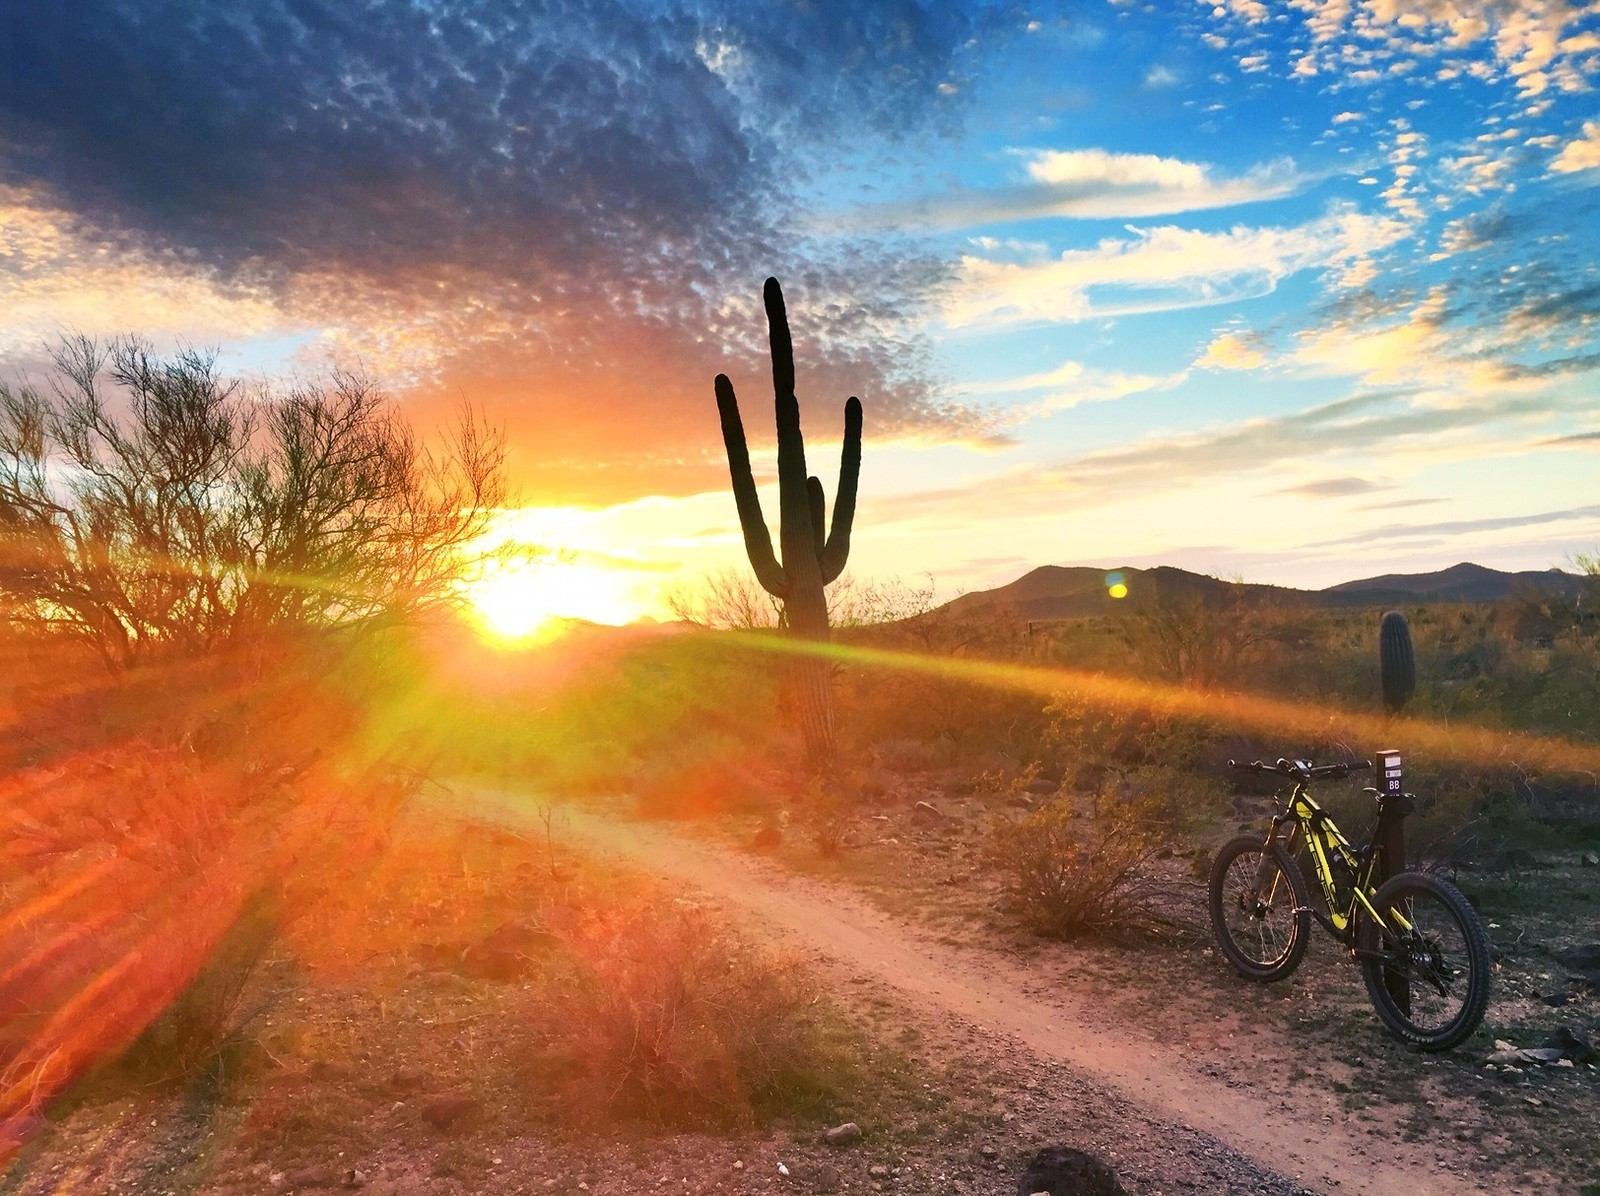 Carbine at sunset - azmtbr - Mountain Biking Pictures - Vital MTB